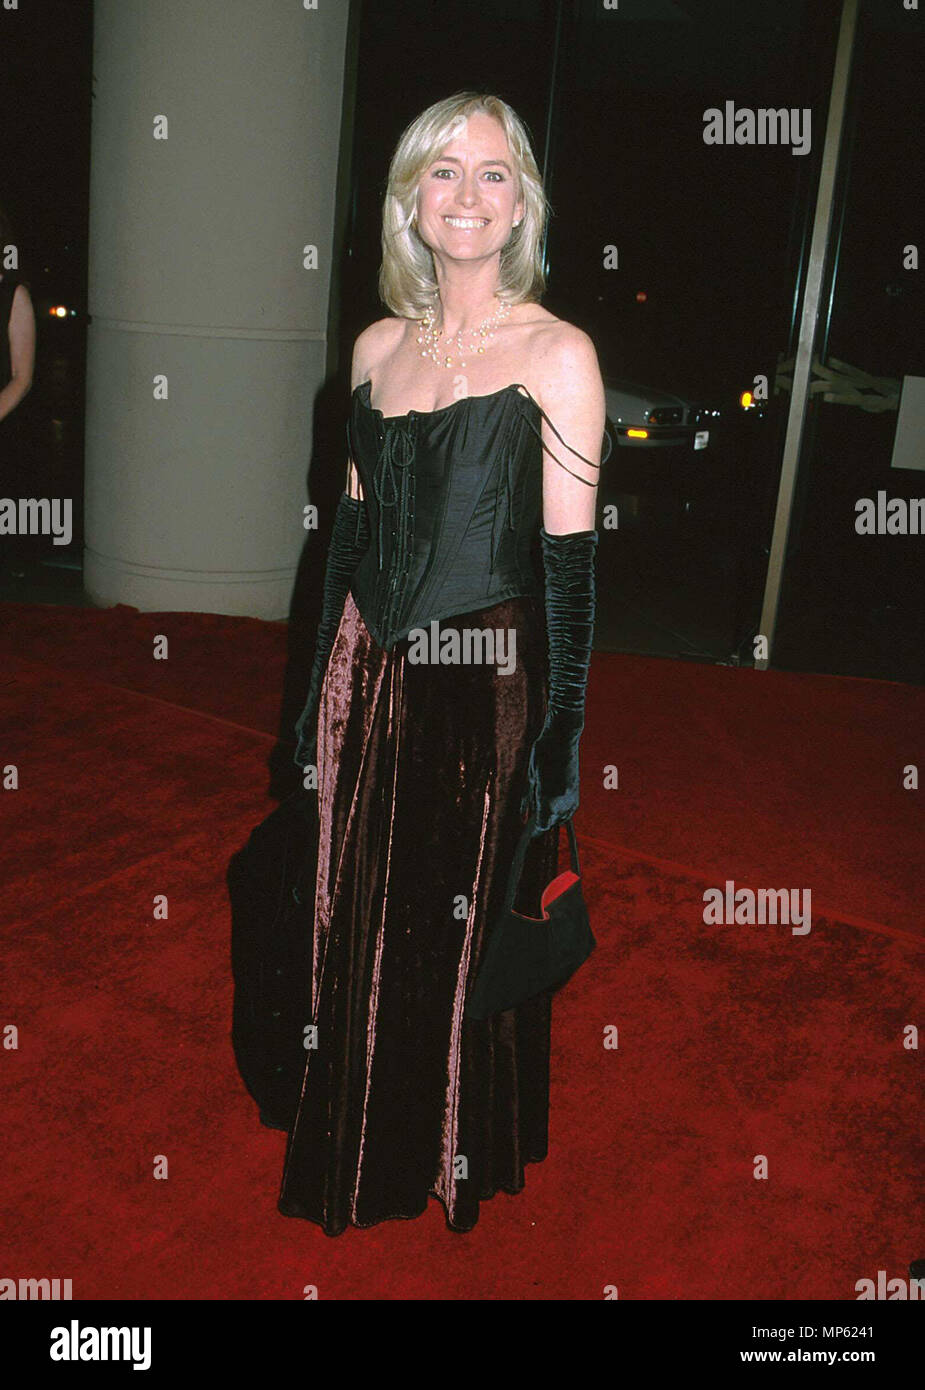 George Susan George Susan Event In Hollywood Life California Red Carpet Event Usa Film Industry Celebrities Photography Bestof Arts Culture And Entertainment Topix Celebrities Fashion Best Of